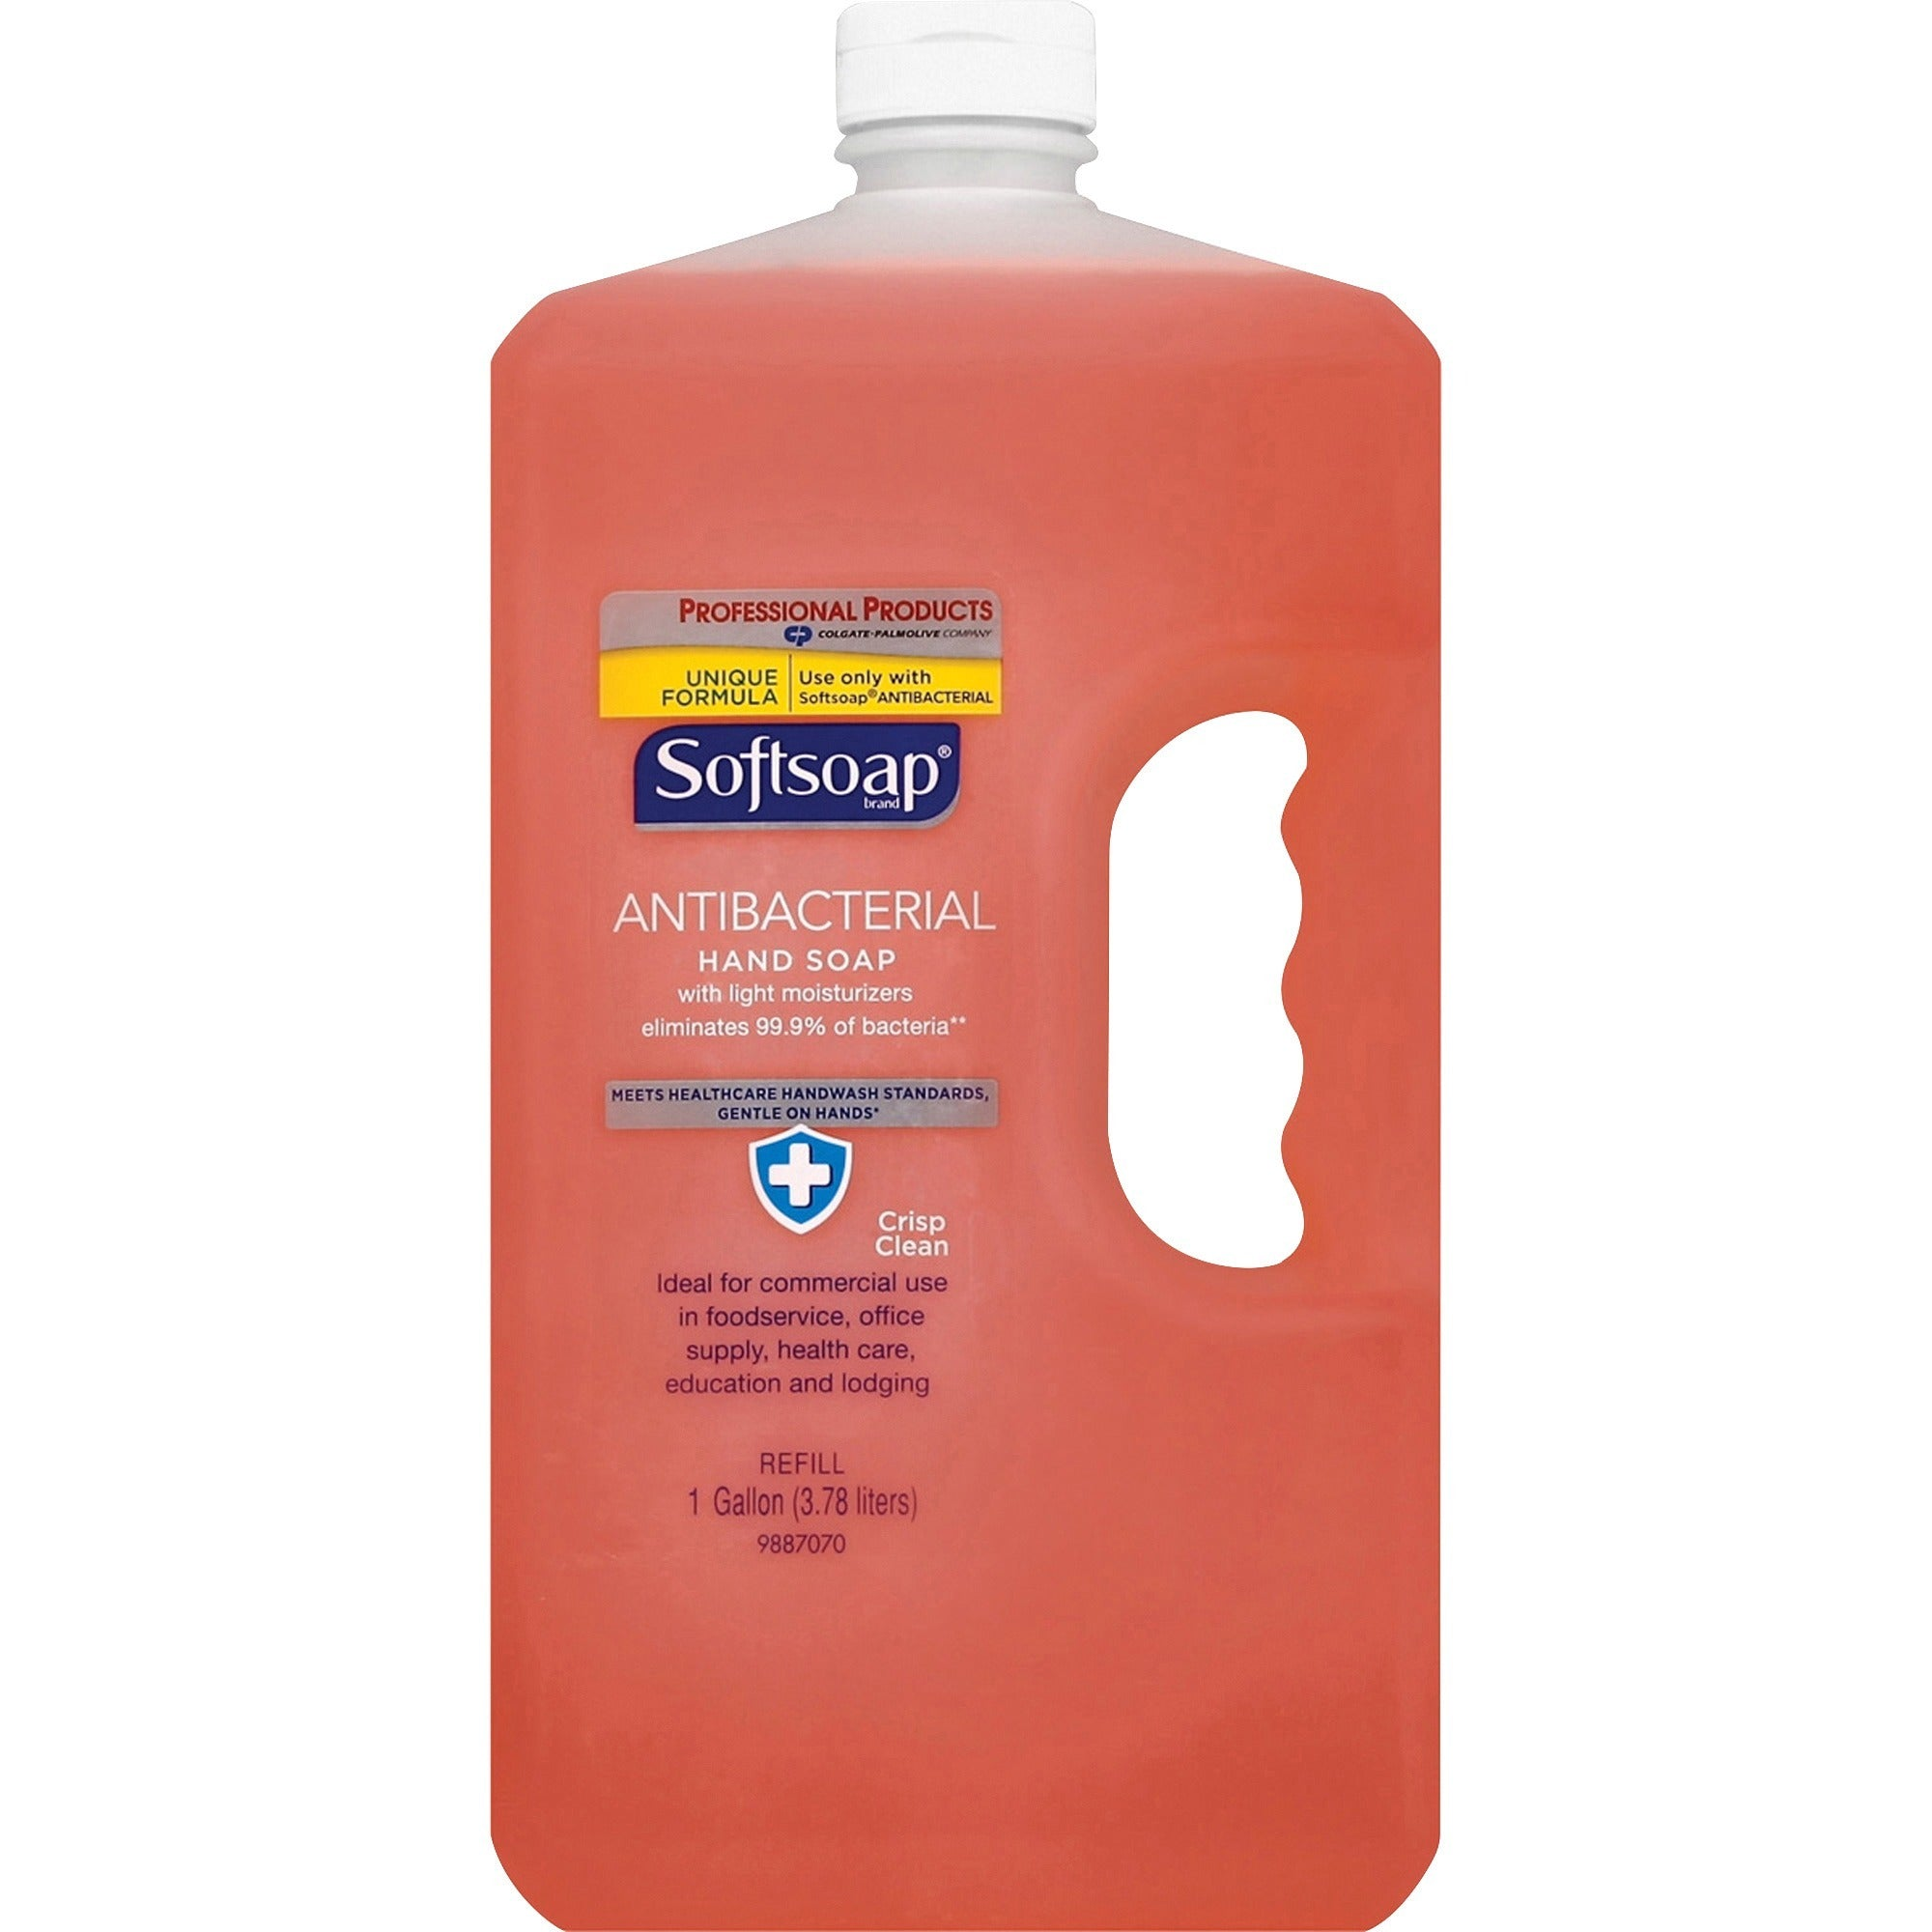 Softsoap Antibacterial Hand Soap Refill -1gallon Bottle